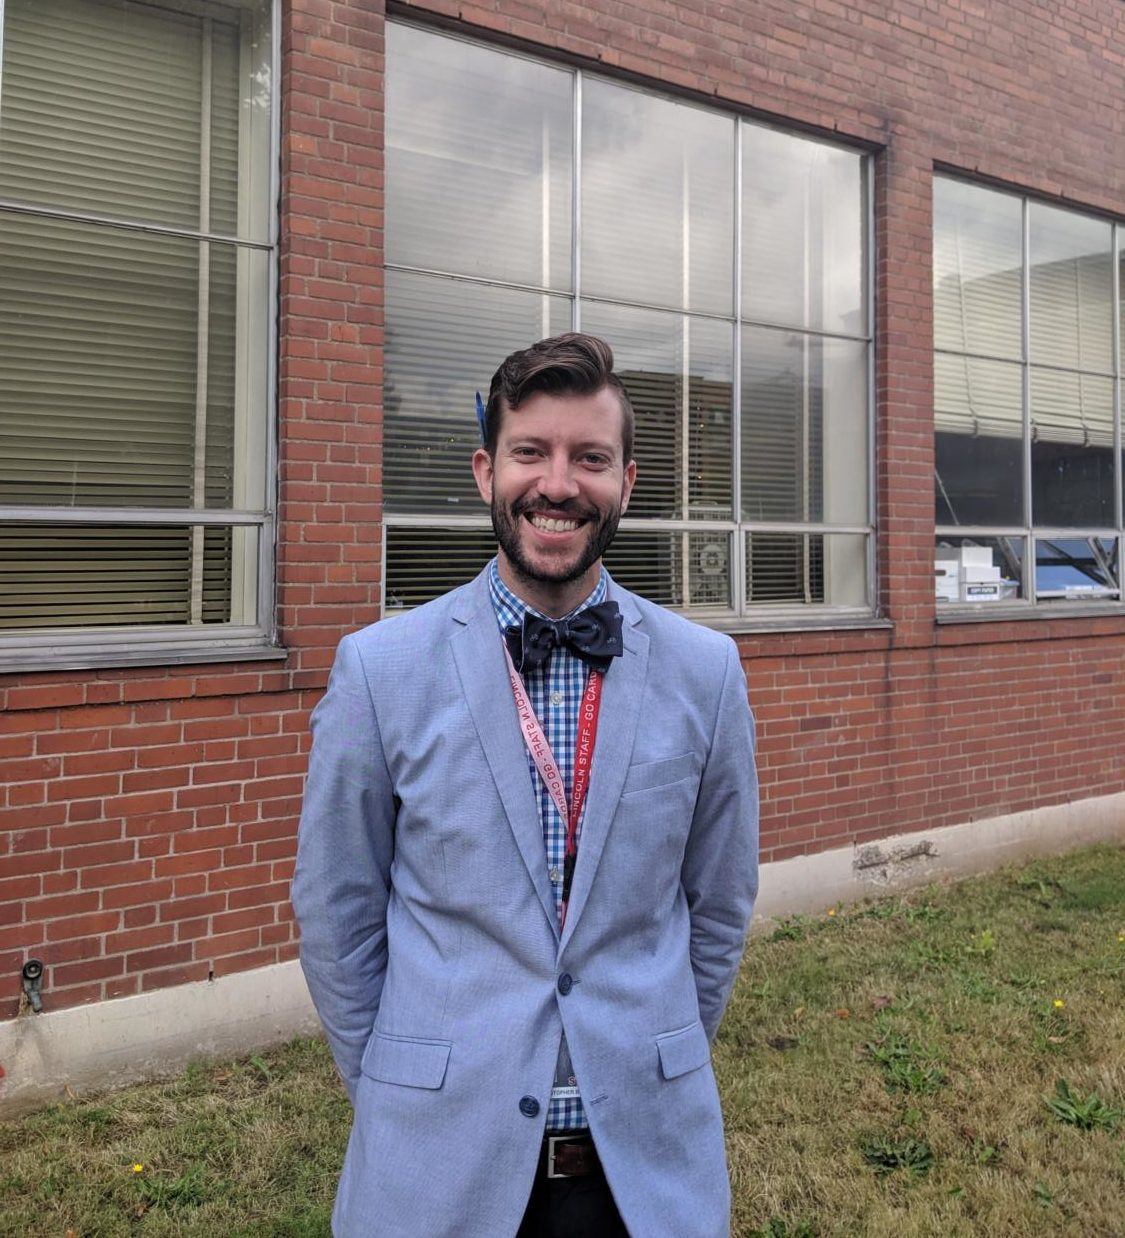 Chris Brida poses in the Lincoln courtyard. Brida is one of Lincoln's newest administators.